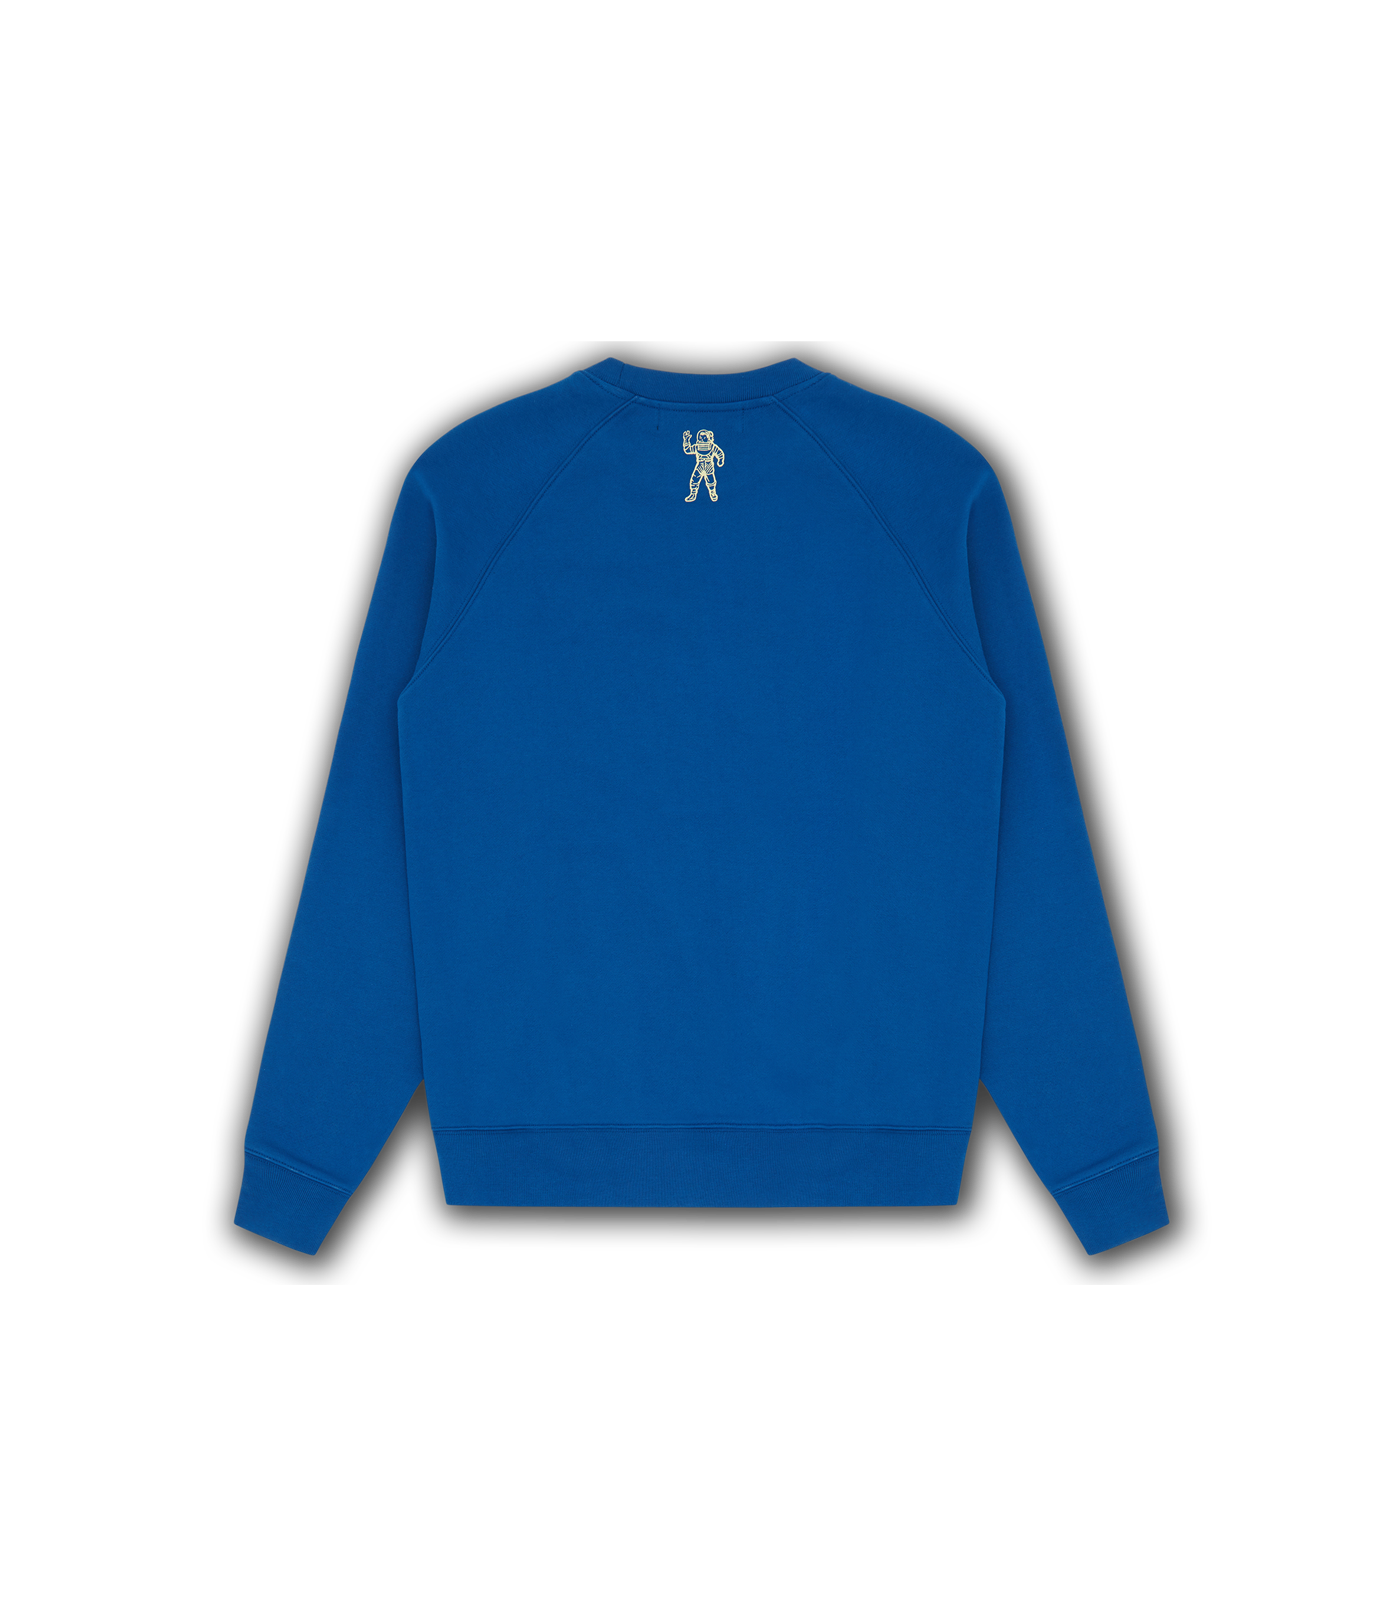 EMBROIDERED LOGO CREWNECK - BLUE